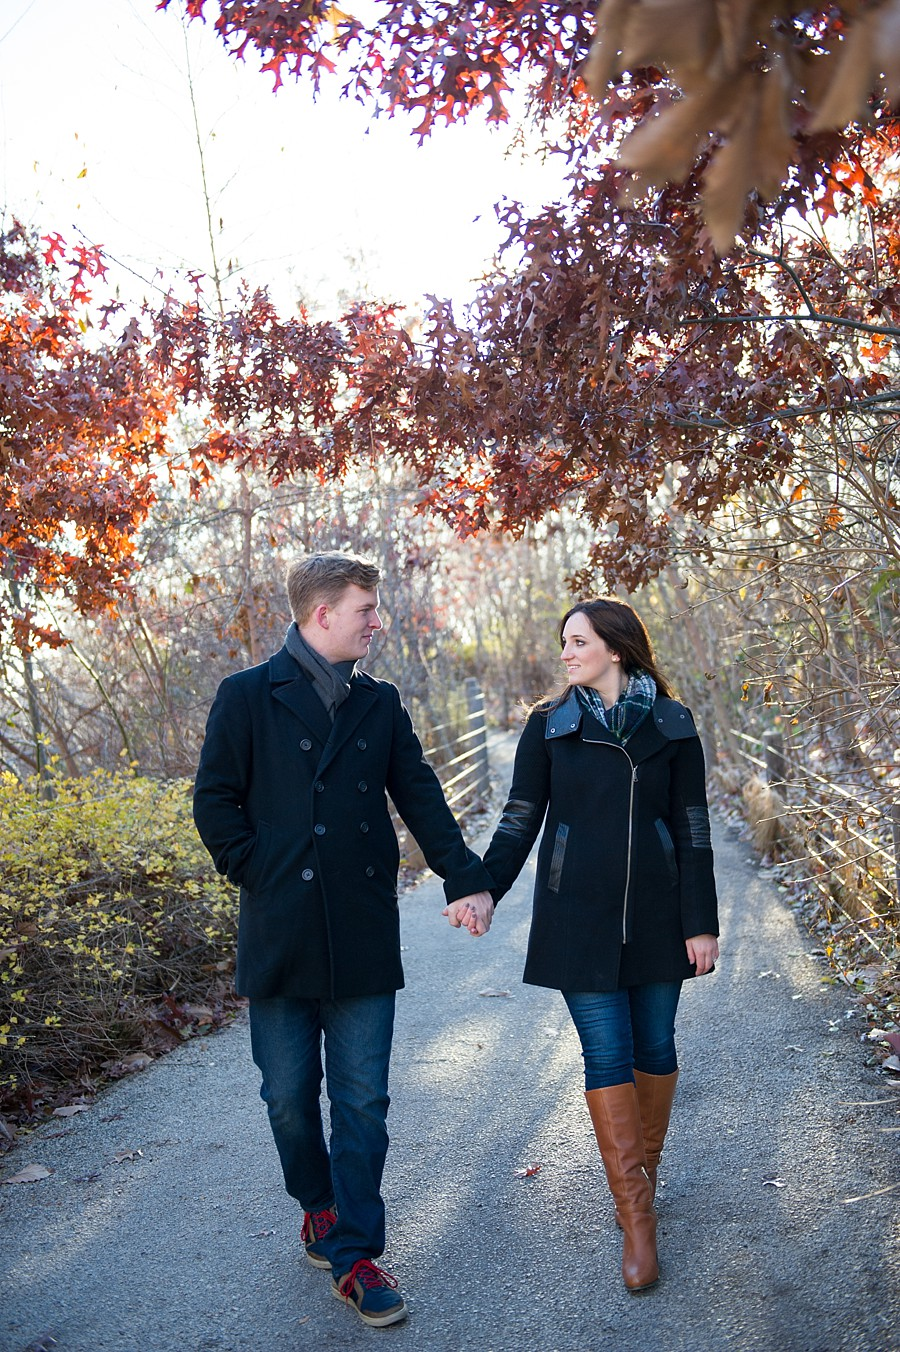 Brooklyn_Engagement_Session_RJ_08.jpg